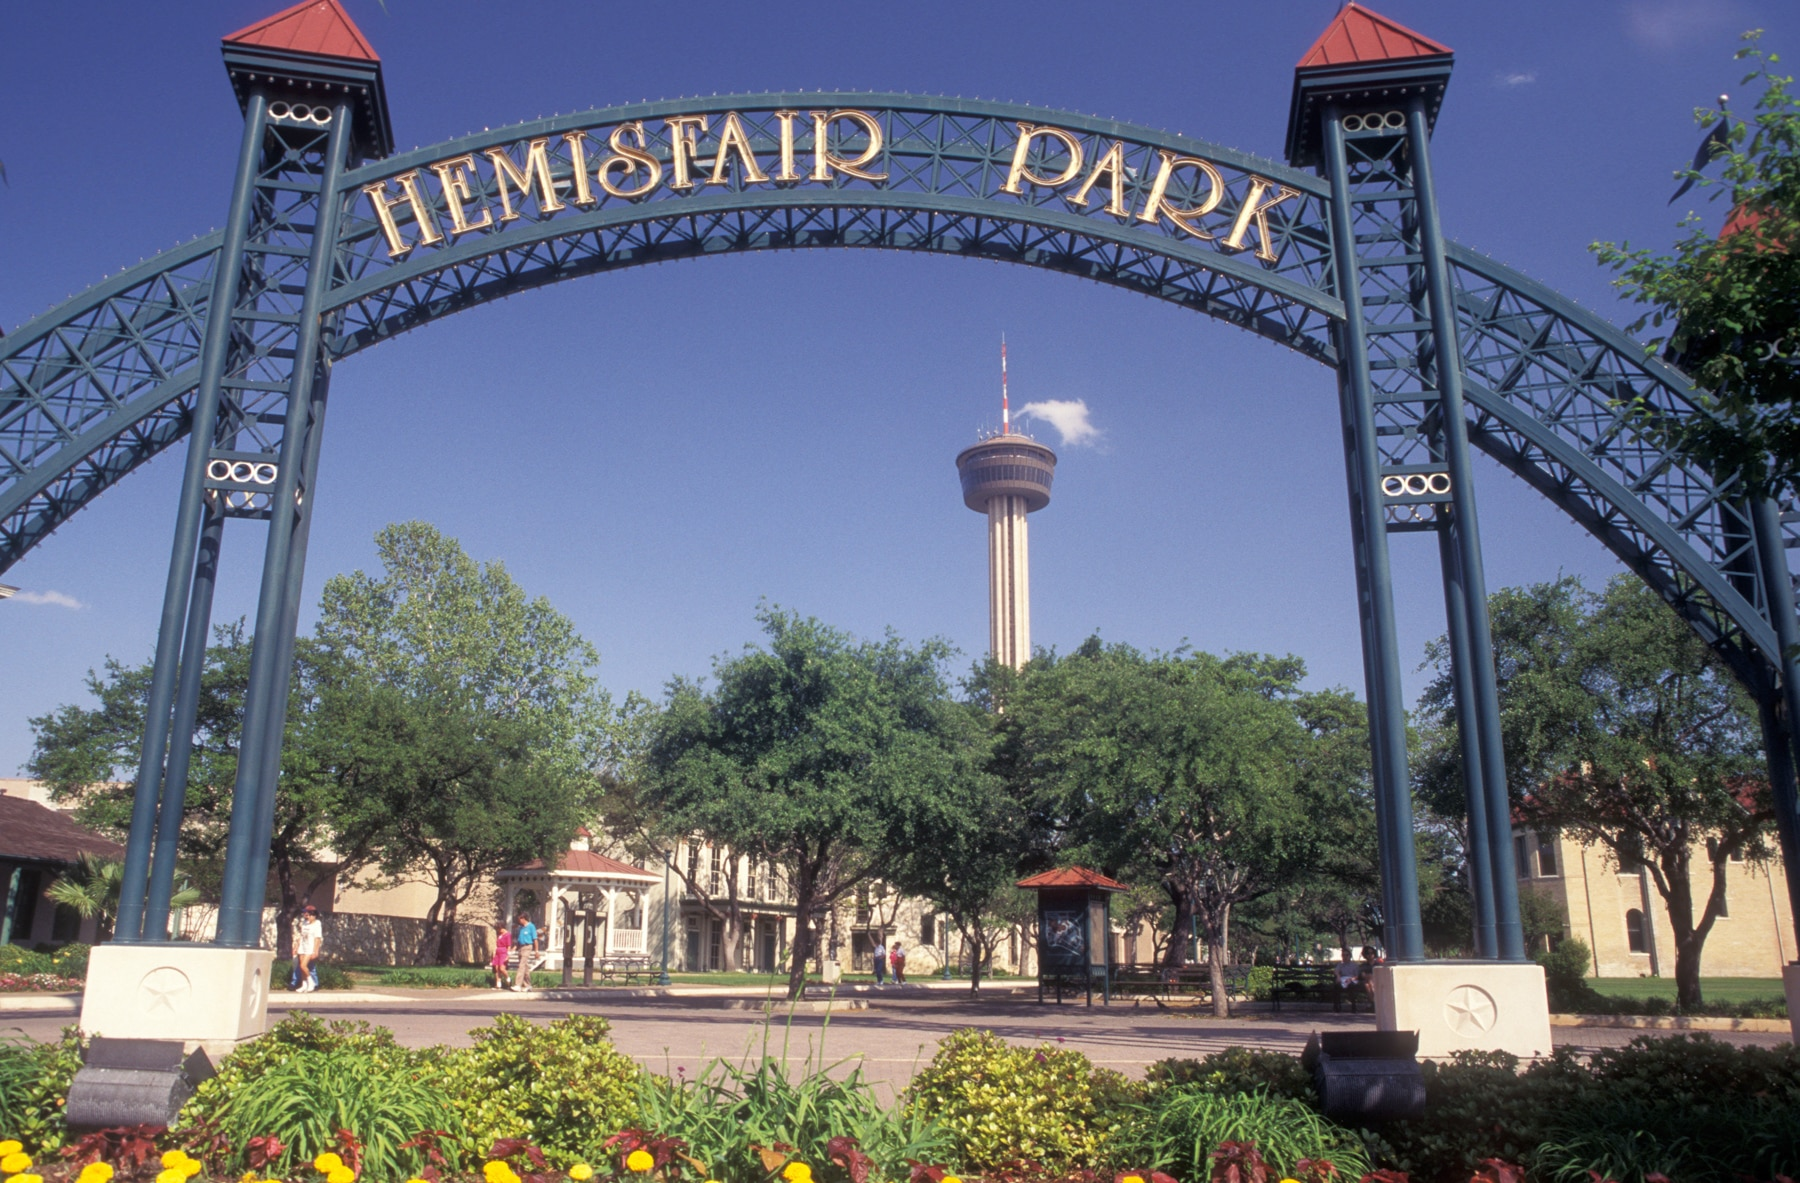 """Sign saying """"Hemisfair Park"""" and tall tower in background (Alamy)"""